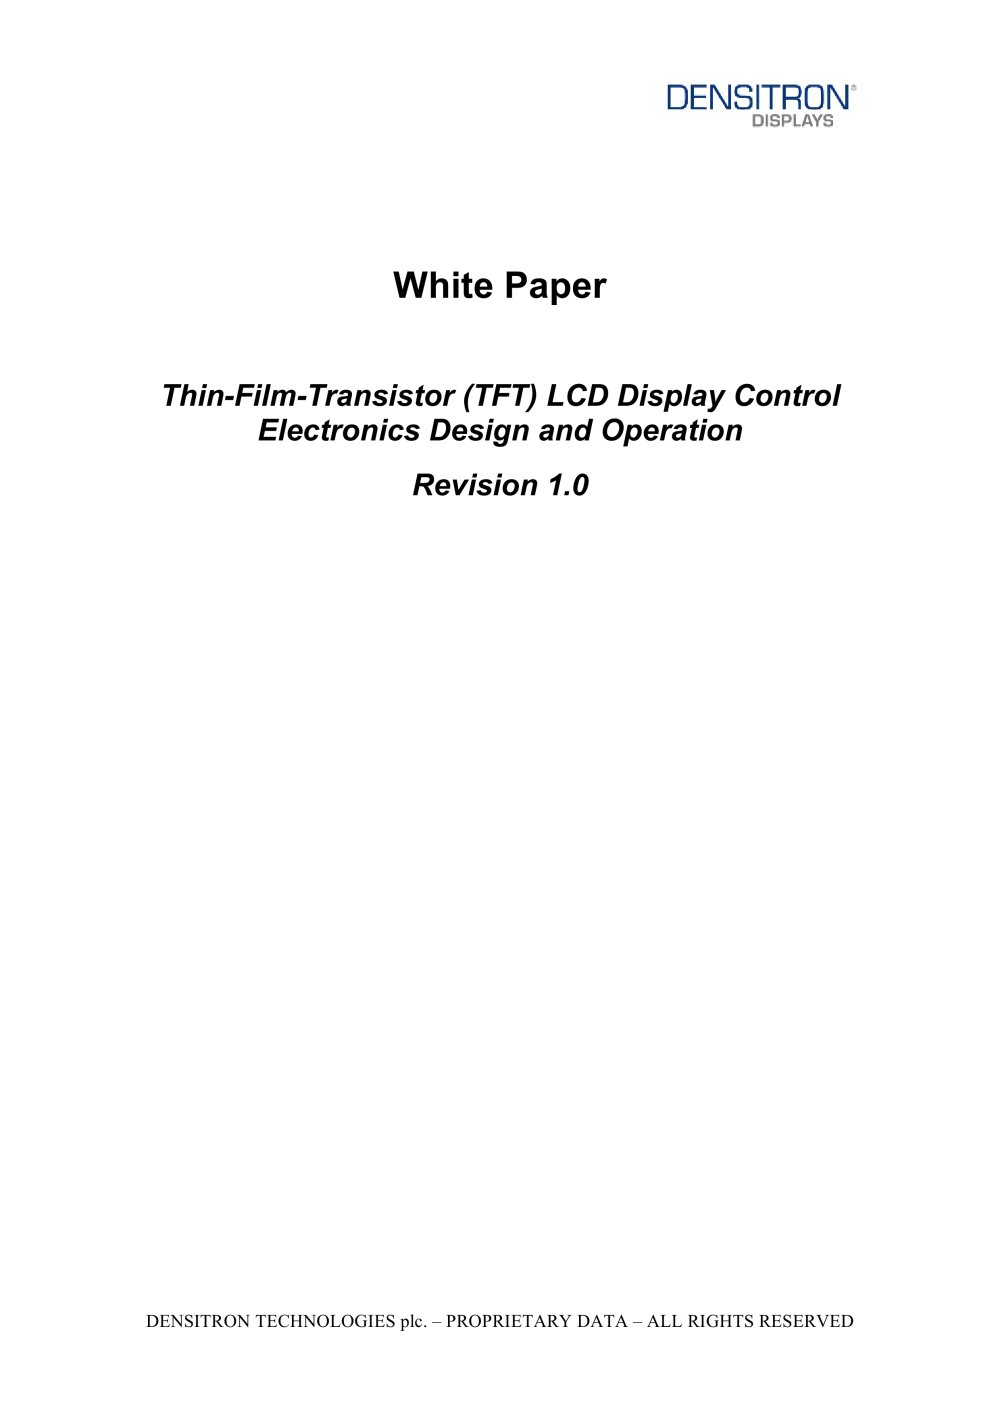 Thin film transistor tft lcd display control electronics design thin film transistor tft lcd display control electronics design and operation 1 17 pages publicscrutiny Image collections